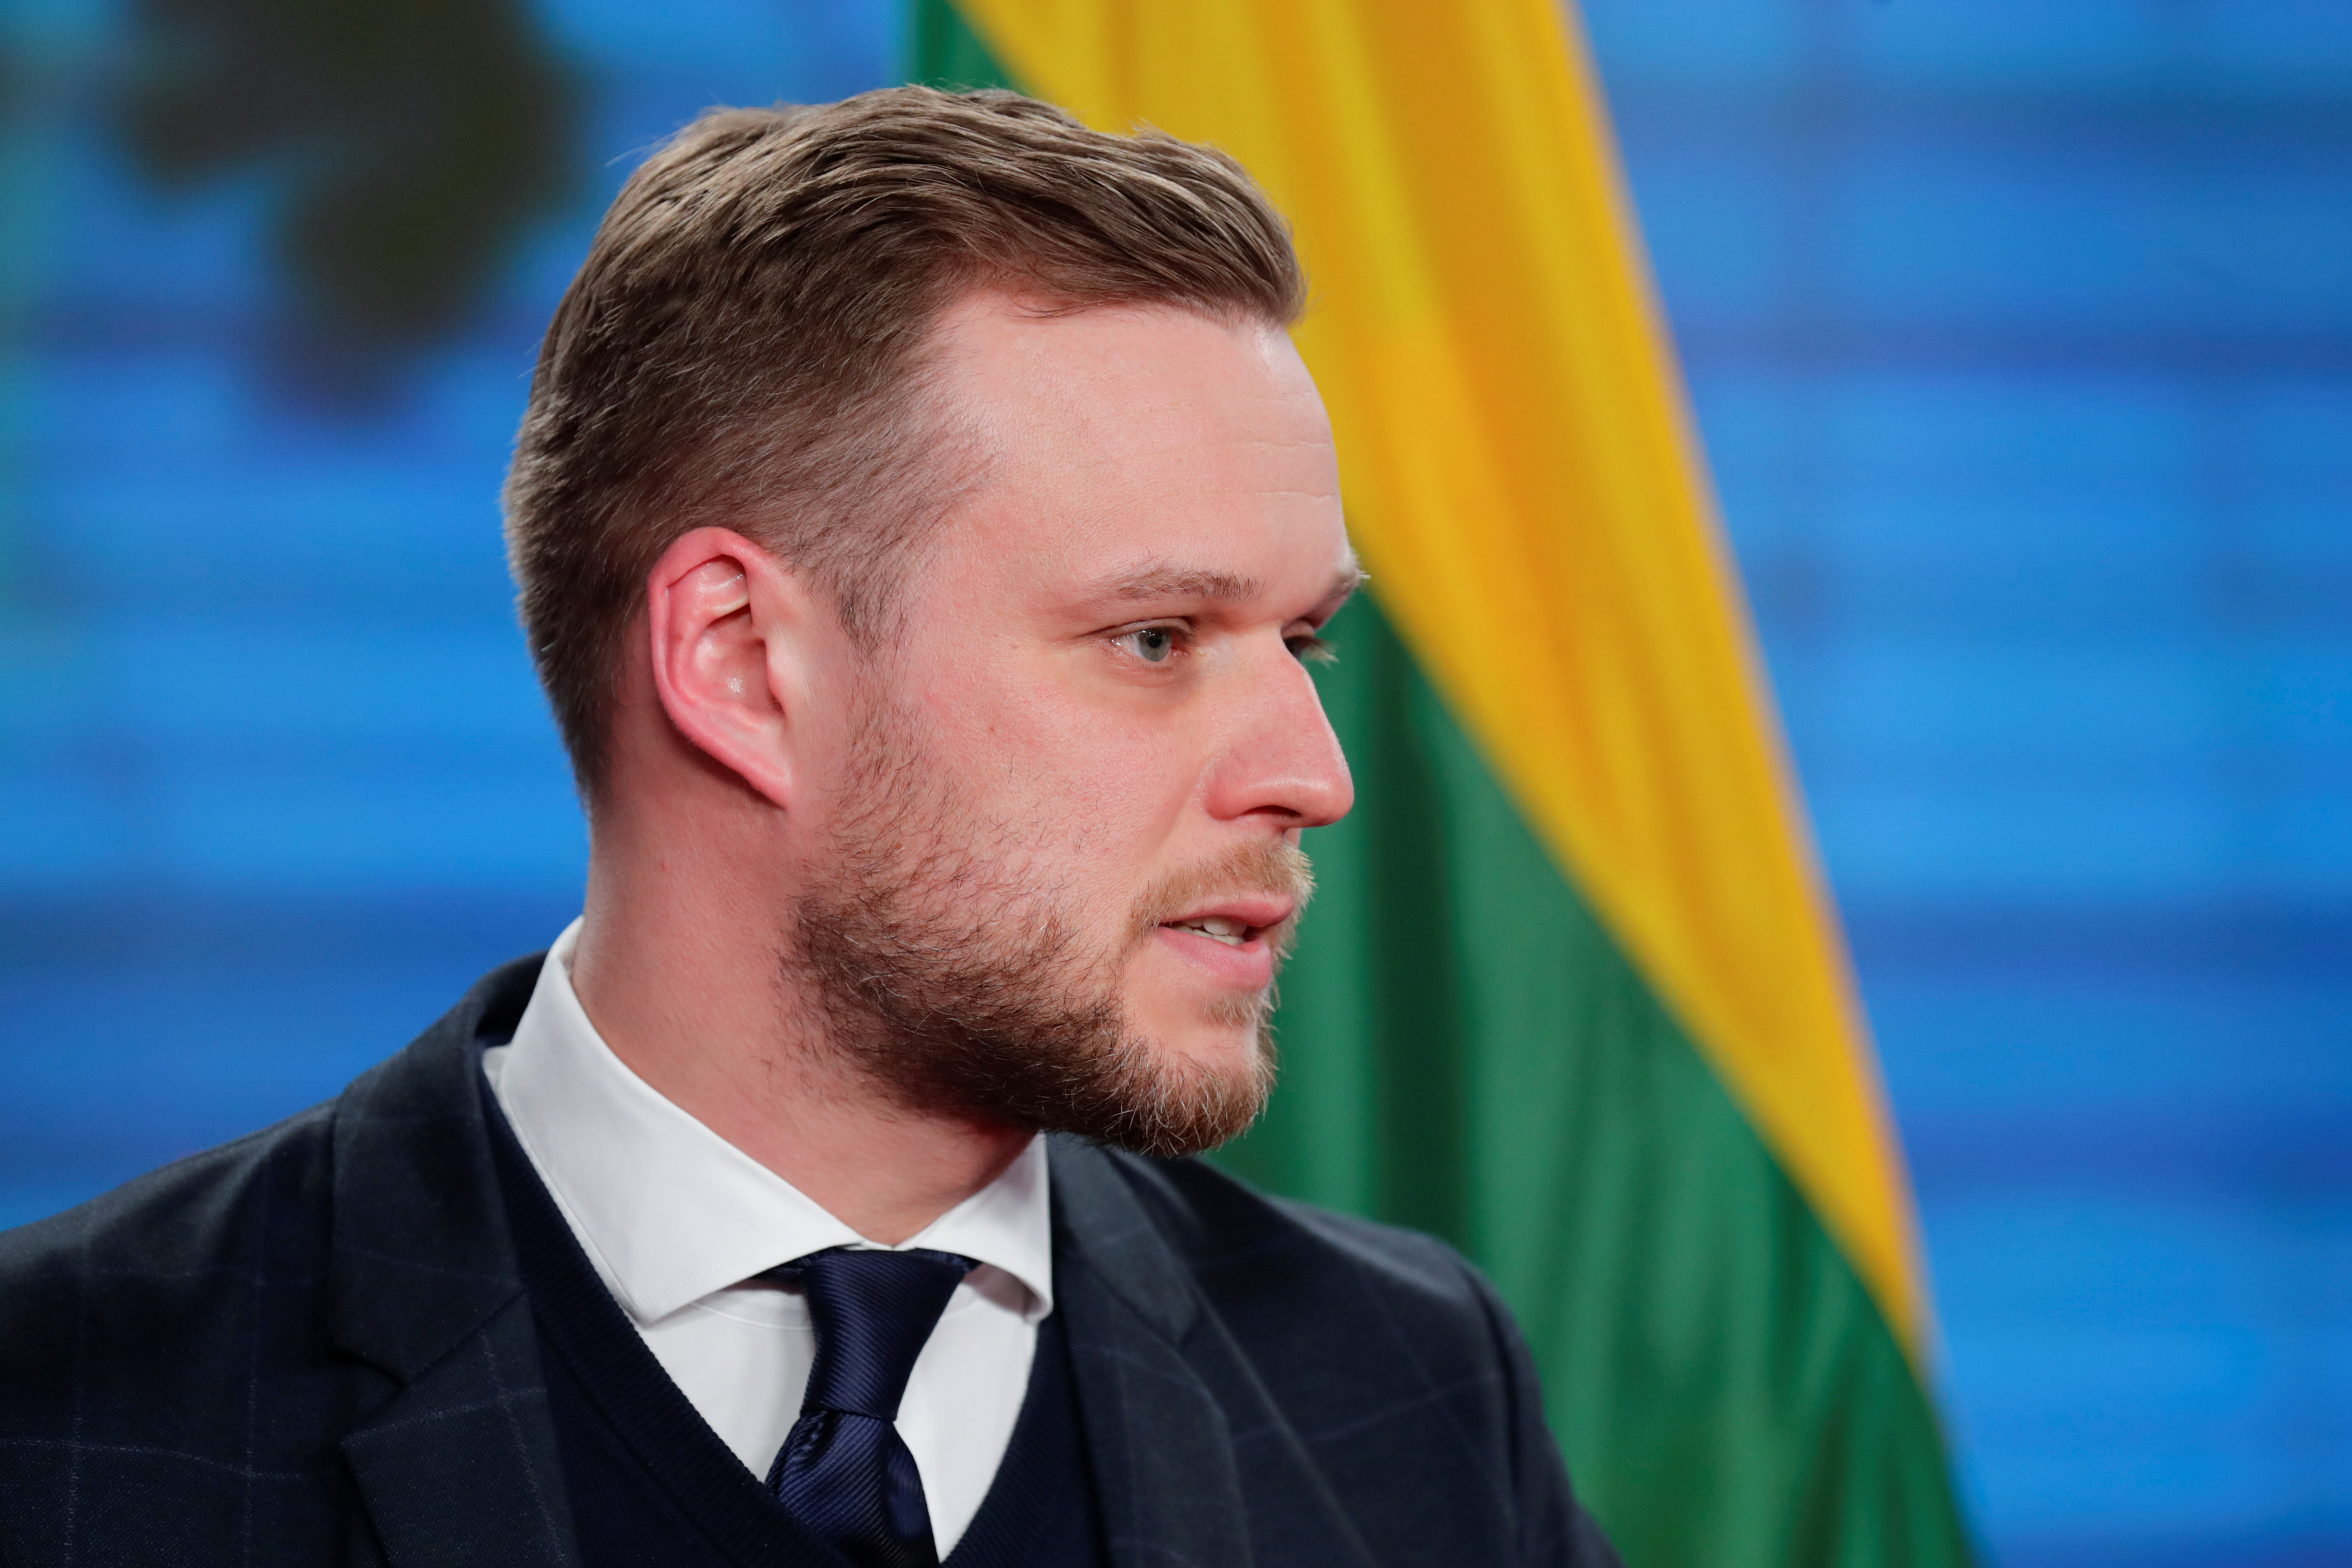 Lithuanian Foreign Minister Gabrielius Landsbergis looks on during a joint news conference with his German counterpart Heiko Maas, in Berlin, Germany, March 17, 2021. REUTERS/Hannibal Hanschke/Pool